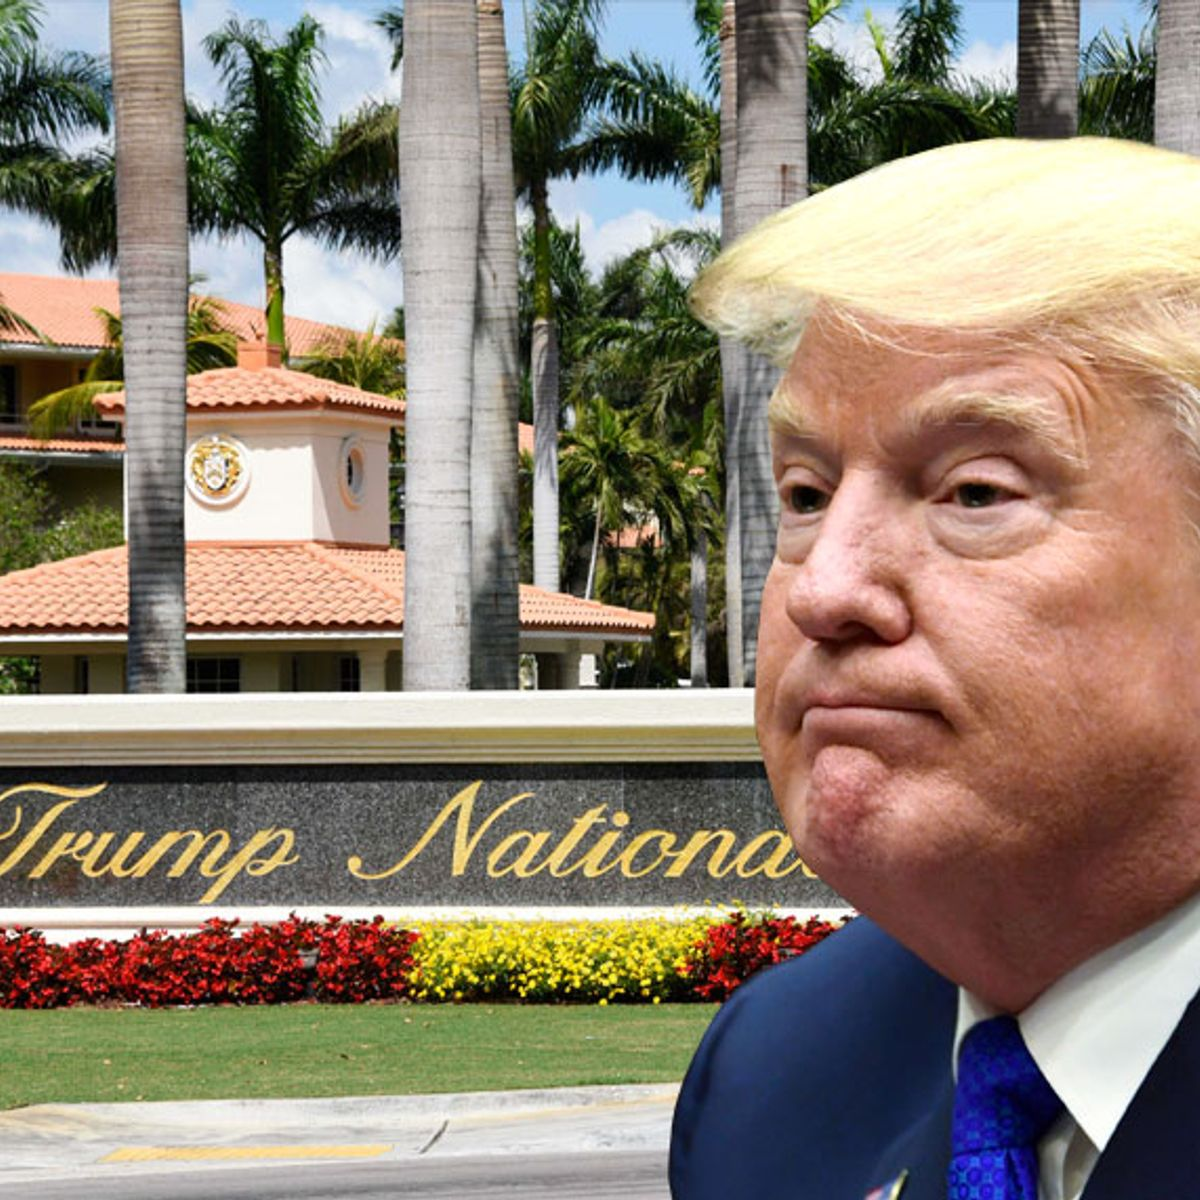 Trump decided not to host that G7 summit at Doral after Republicans objected to the idea: reports